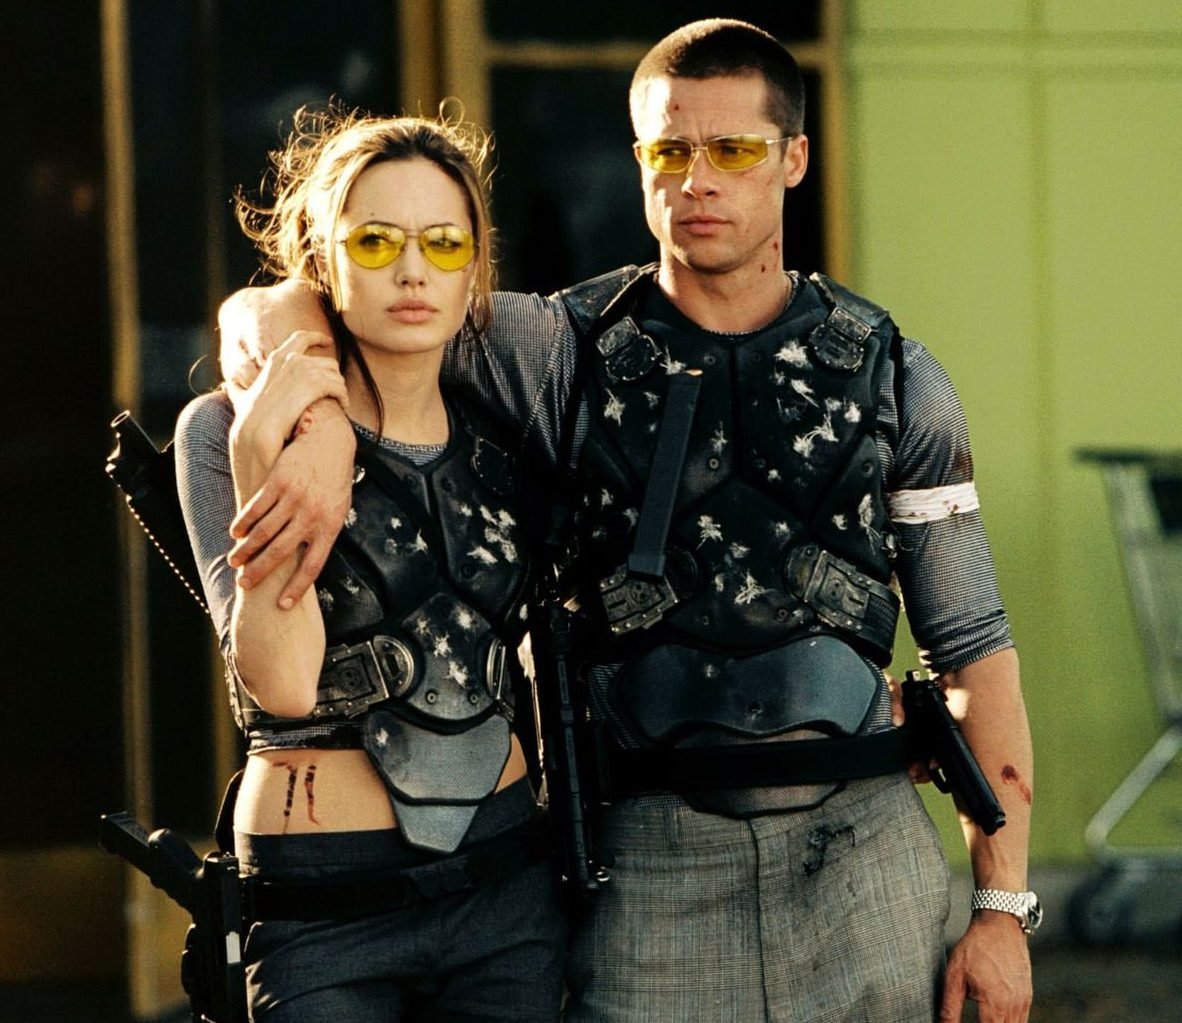 c562121ec9c57e13ee0a8620f0d588c35c mr and mrs smith.rsquare.w1200 e1612265093860 35 Great Movie Romances That Are Actually Deeply Problematic